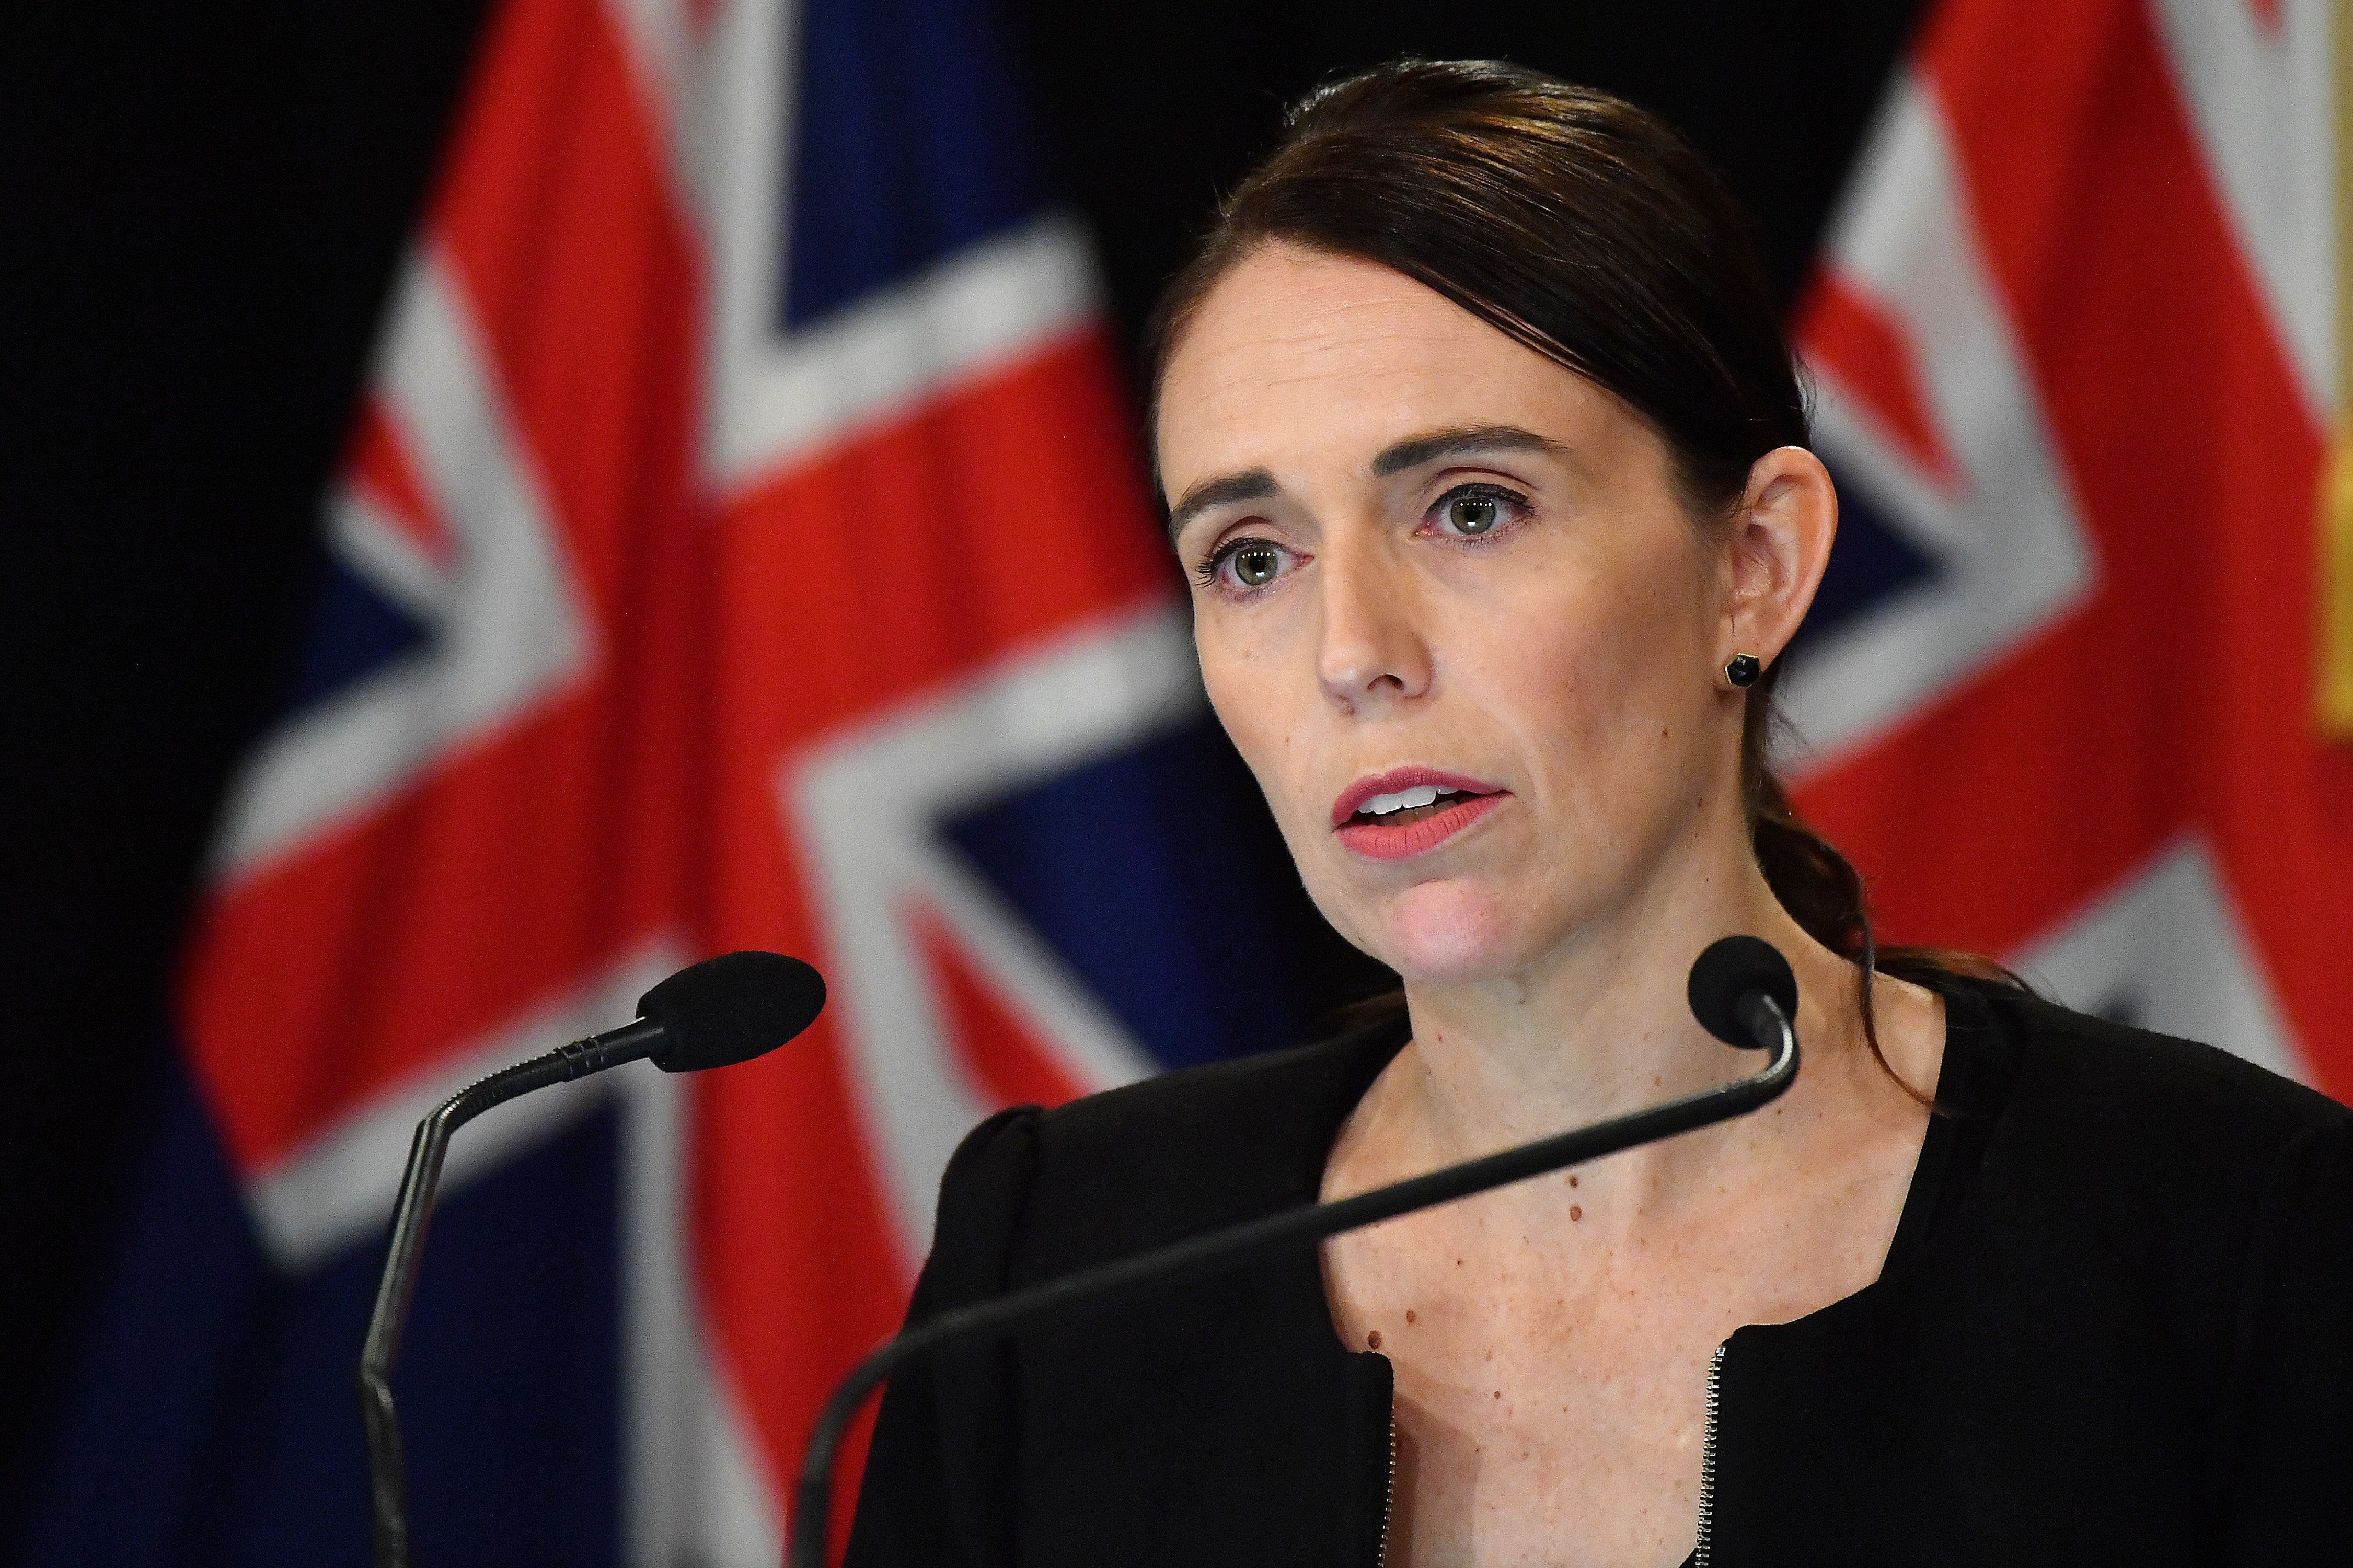 WELLINGTON, NEW ZEALAND - MARCH 16: New Zealand Prime Minister Jacinda Ardern speaks to the media on March 16, 2019 in Wellington, New Zealand. At least 49 people are confirmed dead, with more than 40 people injured following attacks on two mosques in Christchurch on Friday afternoon. 41 of the victims were killed at Al Noor Mosque on Deans Avenue and seven died at Linwood mosque. Another victim died later in Christchurch hospital. Three people are in custody over the mass shootings. An Australian man has been charged with murder and will appear in court today. (Photo by Mark Tantrum/Getty Images)